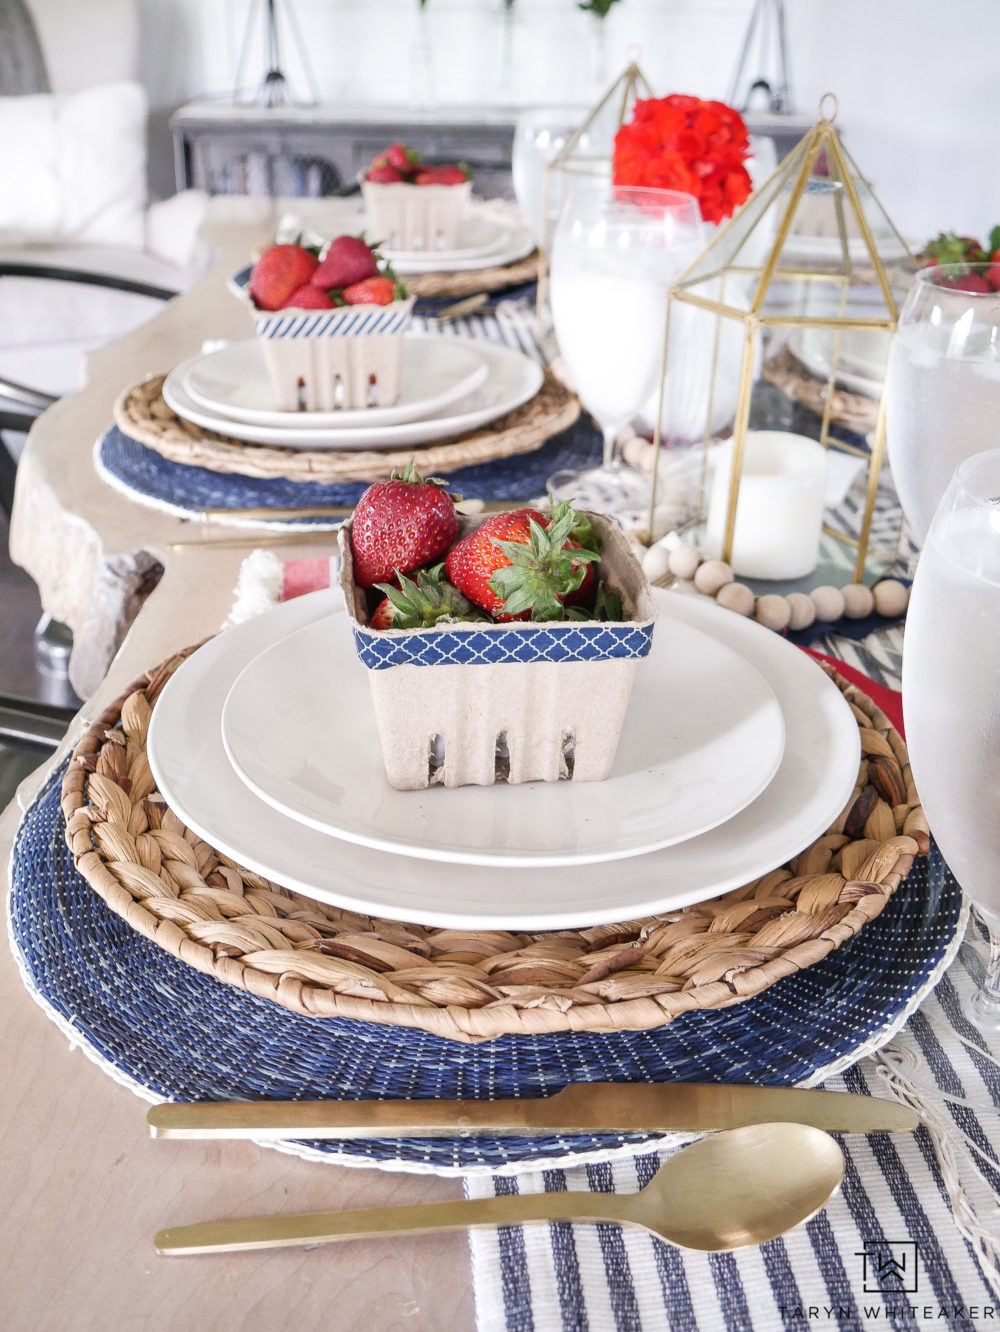 Perfect summer table setting with wicker, navy and fresh berries. The gold flatware is perfect in here.